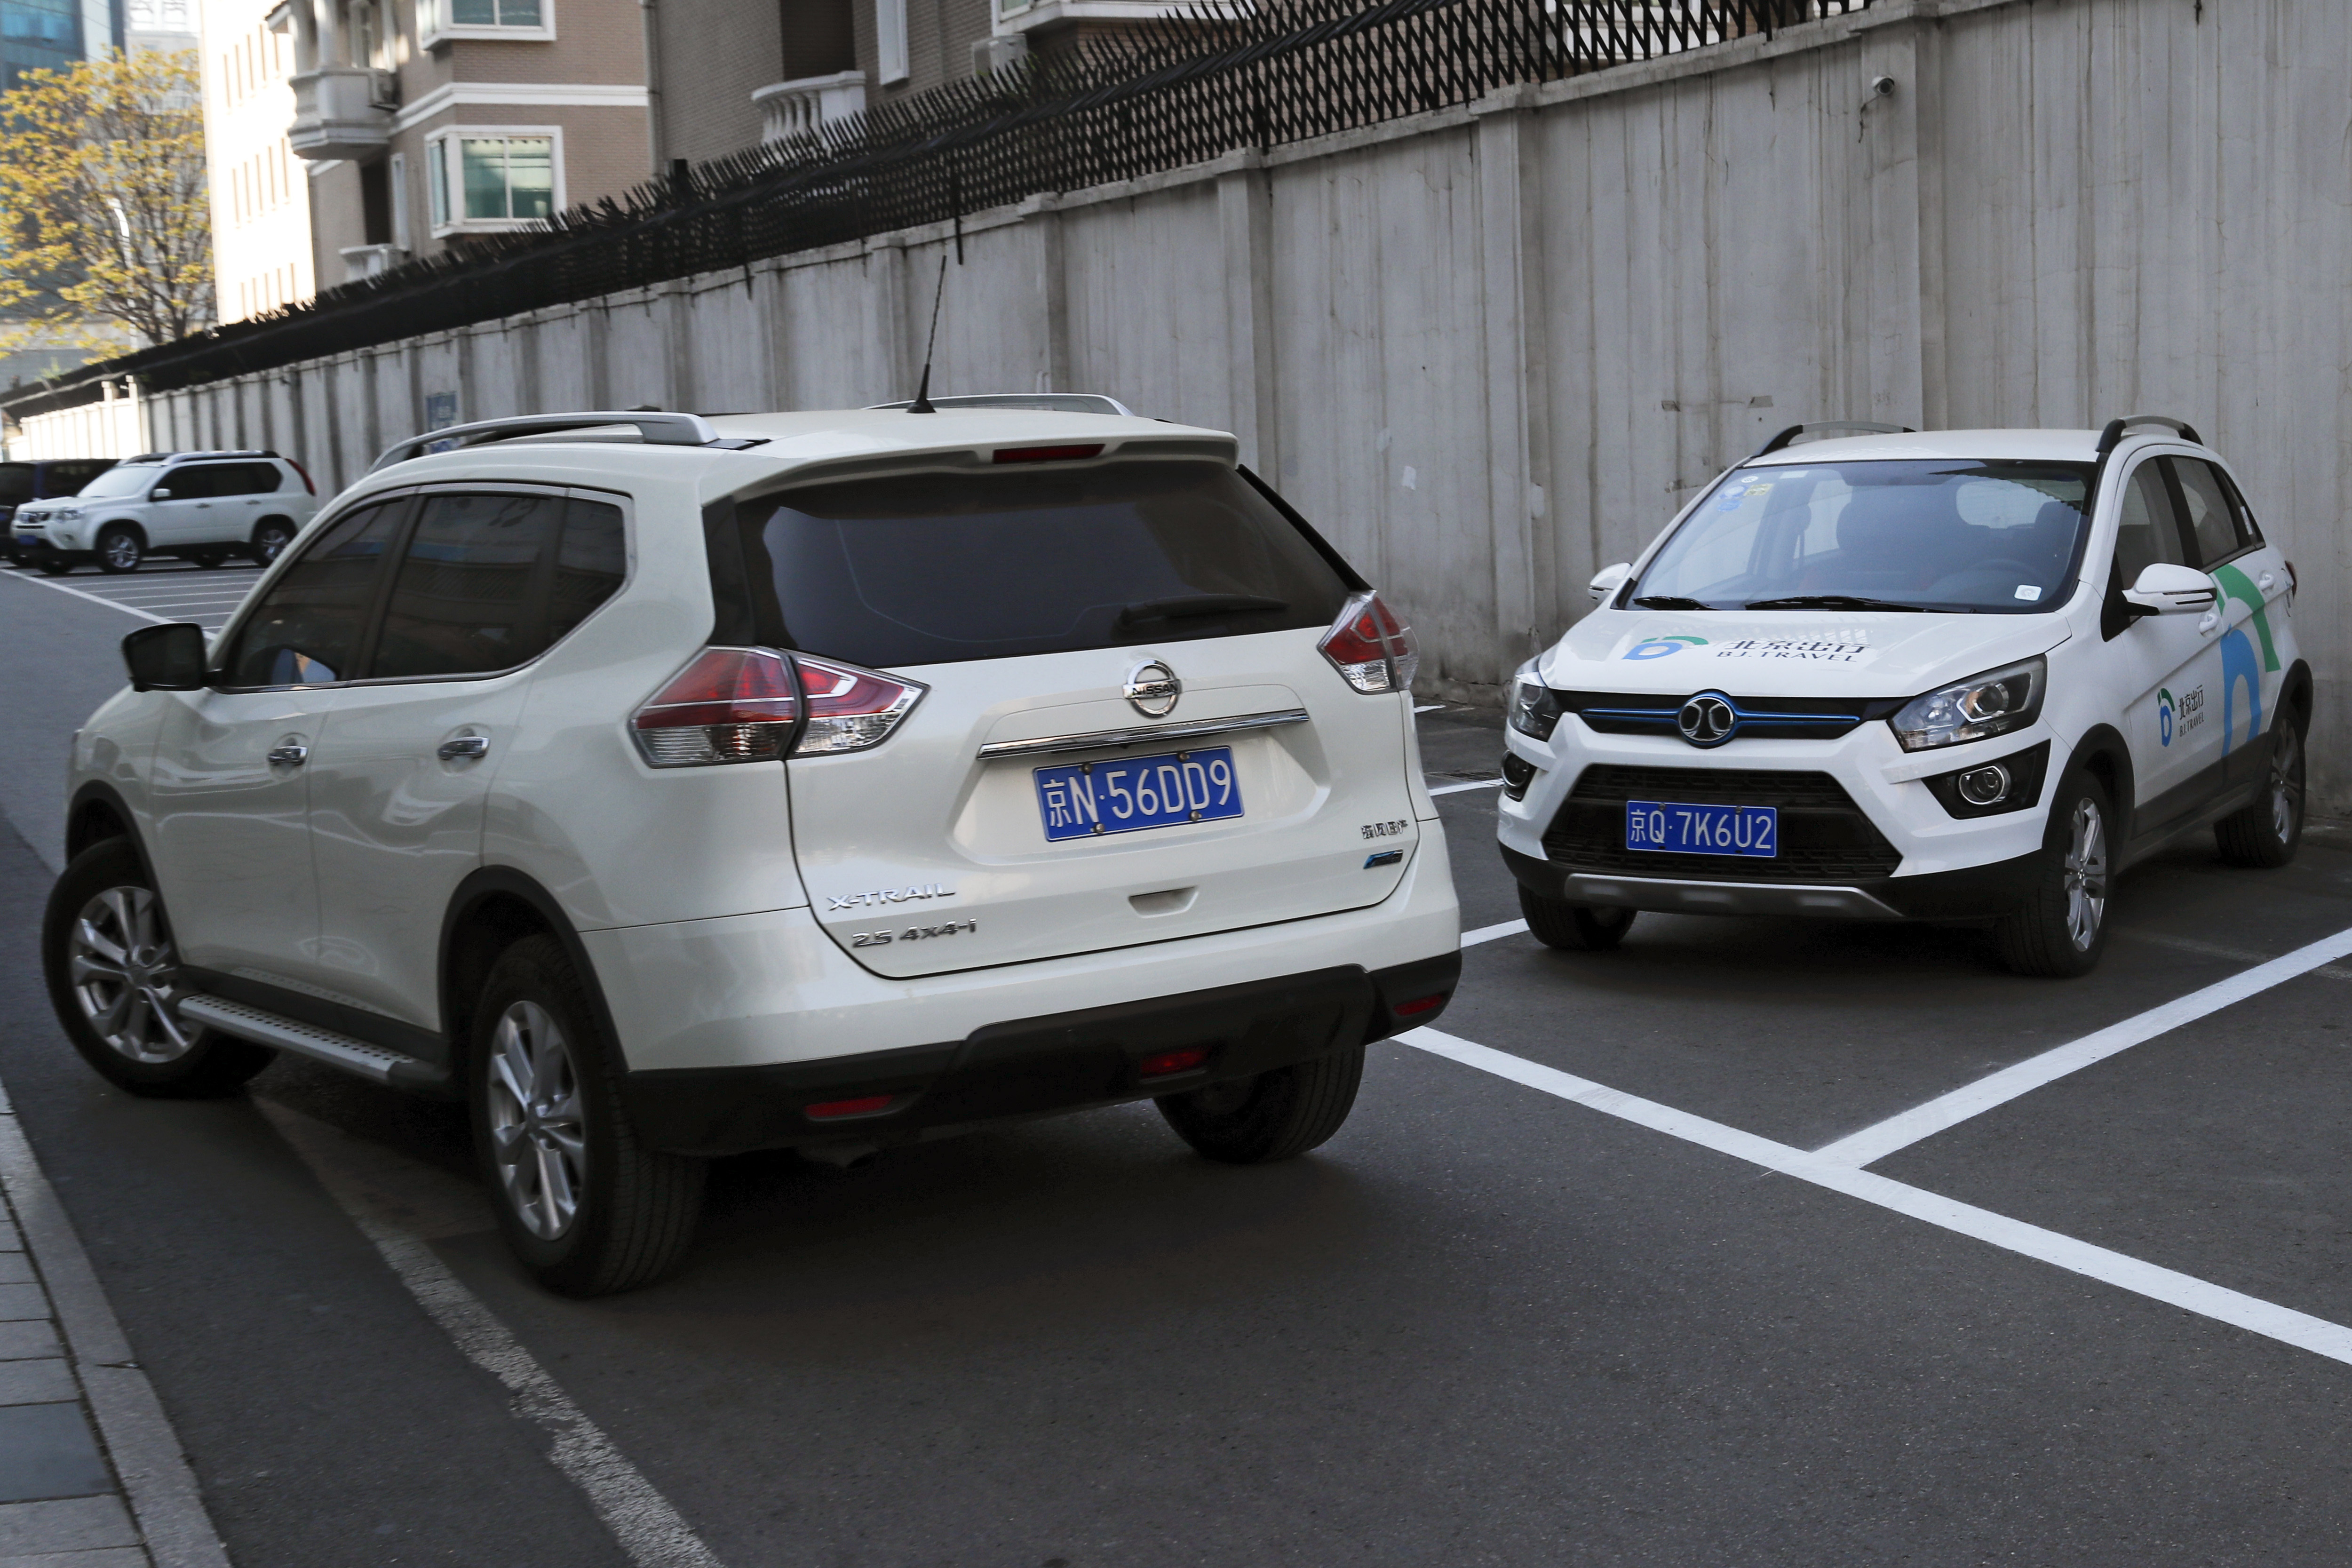 China Electric Car Dreams-4 In this Friday, April 14, 2017 photo, a SUV vehicle, left, drives past an electric-powered SUV parked outside a shopping mall in Beijing. Automakers face a dilemma in China's huge but crowded market: Regulators are pushing them to sell electric cars, but buyers want gas-guzzling SUVs. This month's Shanghai auto show, the industry's biggest marketing event of the year, will showcase efforts to create electric models Chinese drivers want to buy. (AP Photo/Andy Wong)